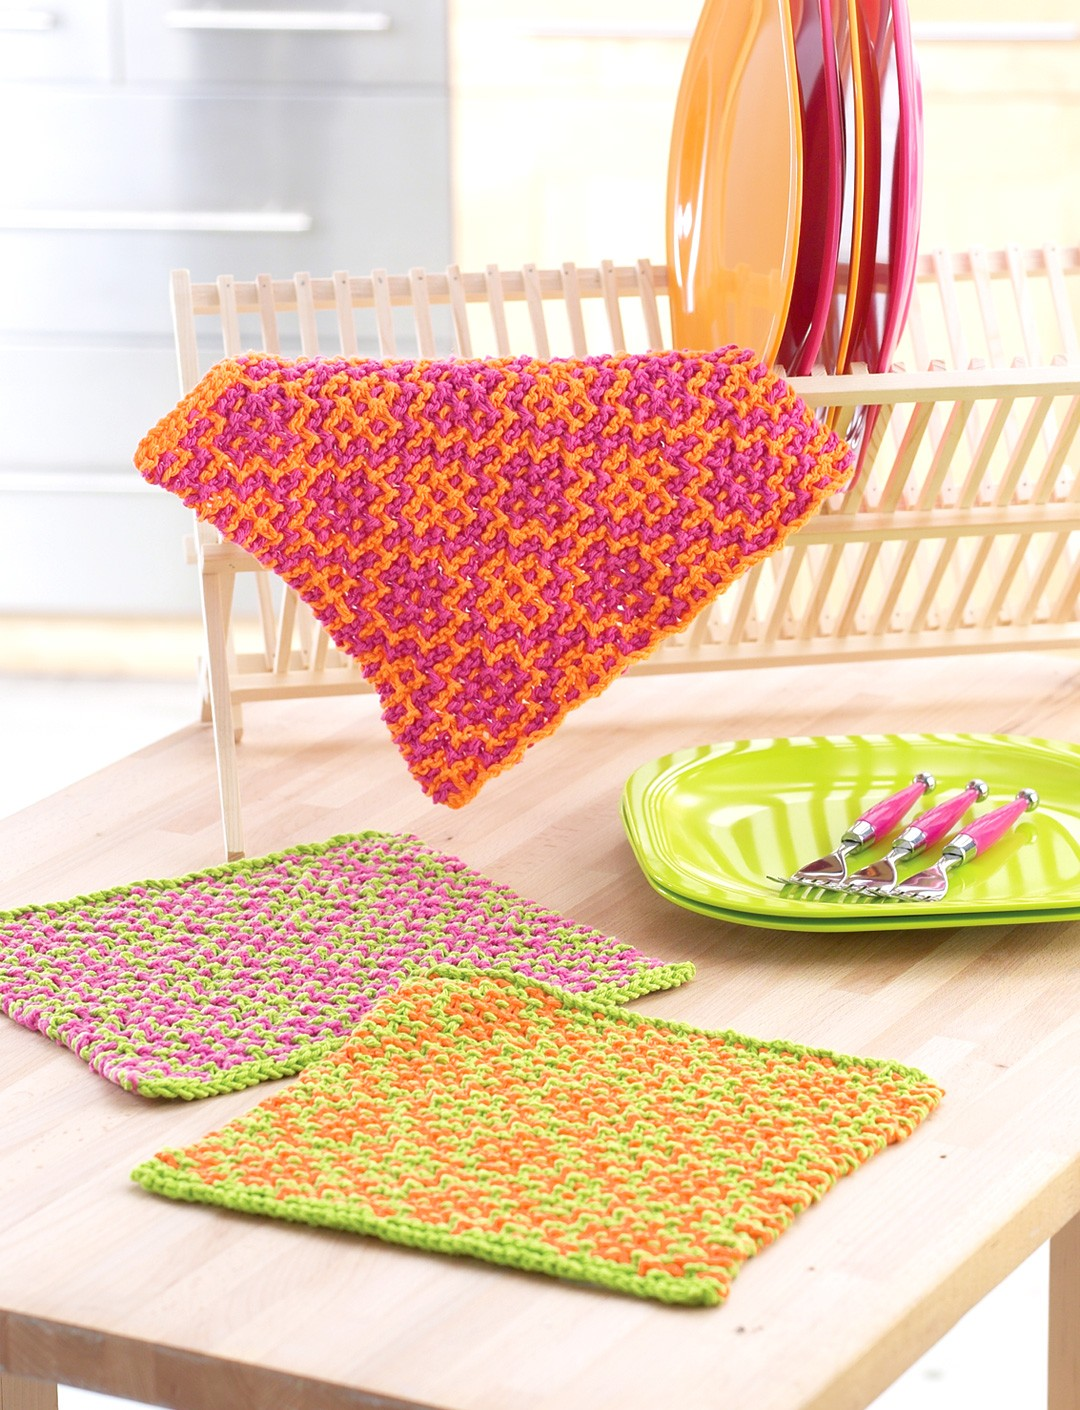 Mosaic Flower Dishcloths